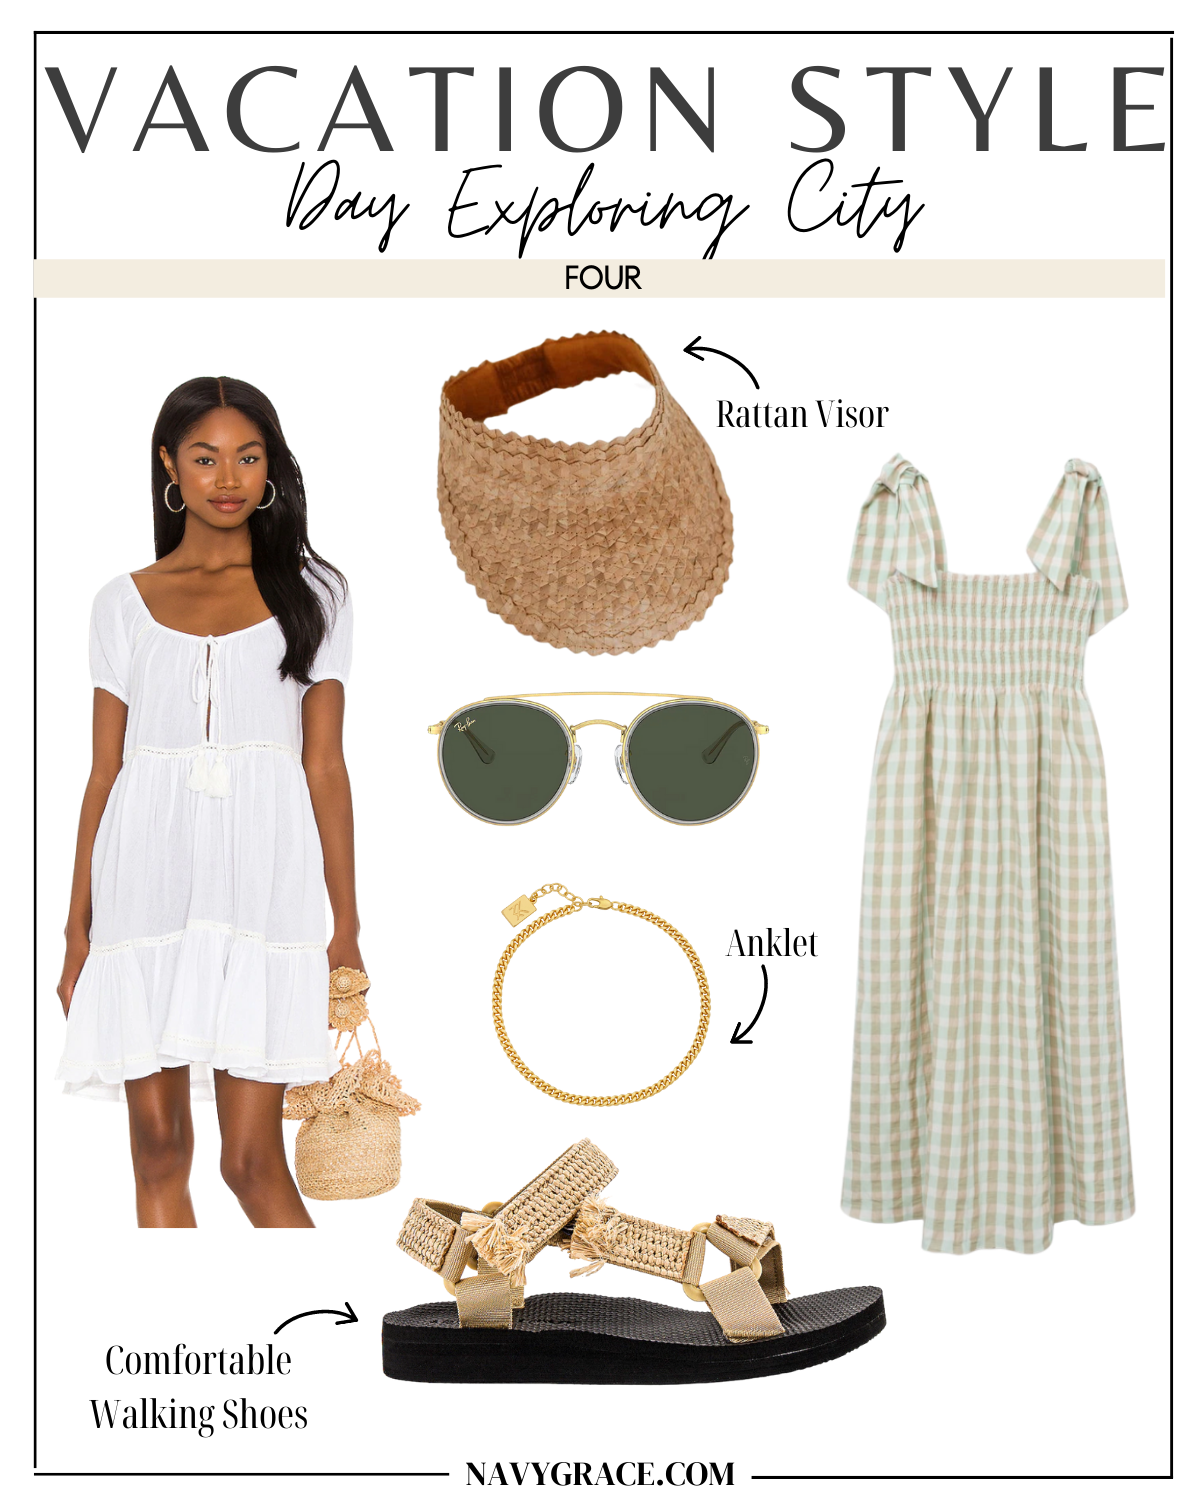 Vacation Ready Looks and outfit ideas